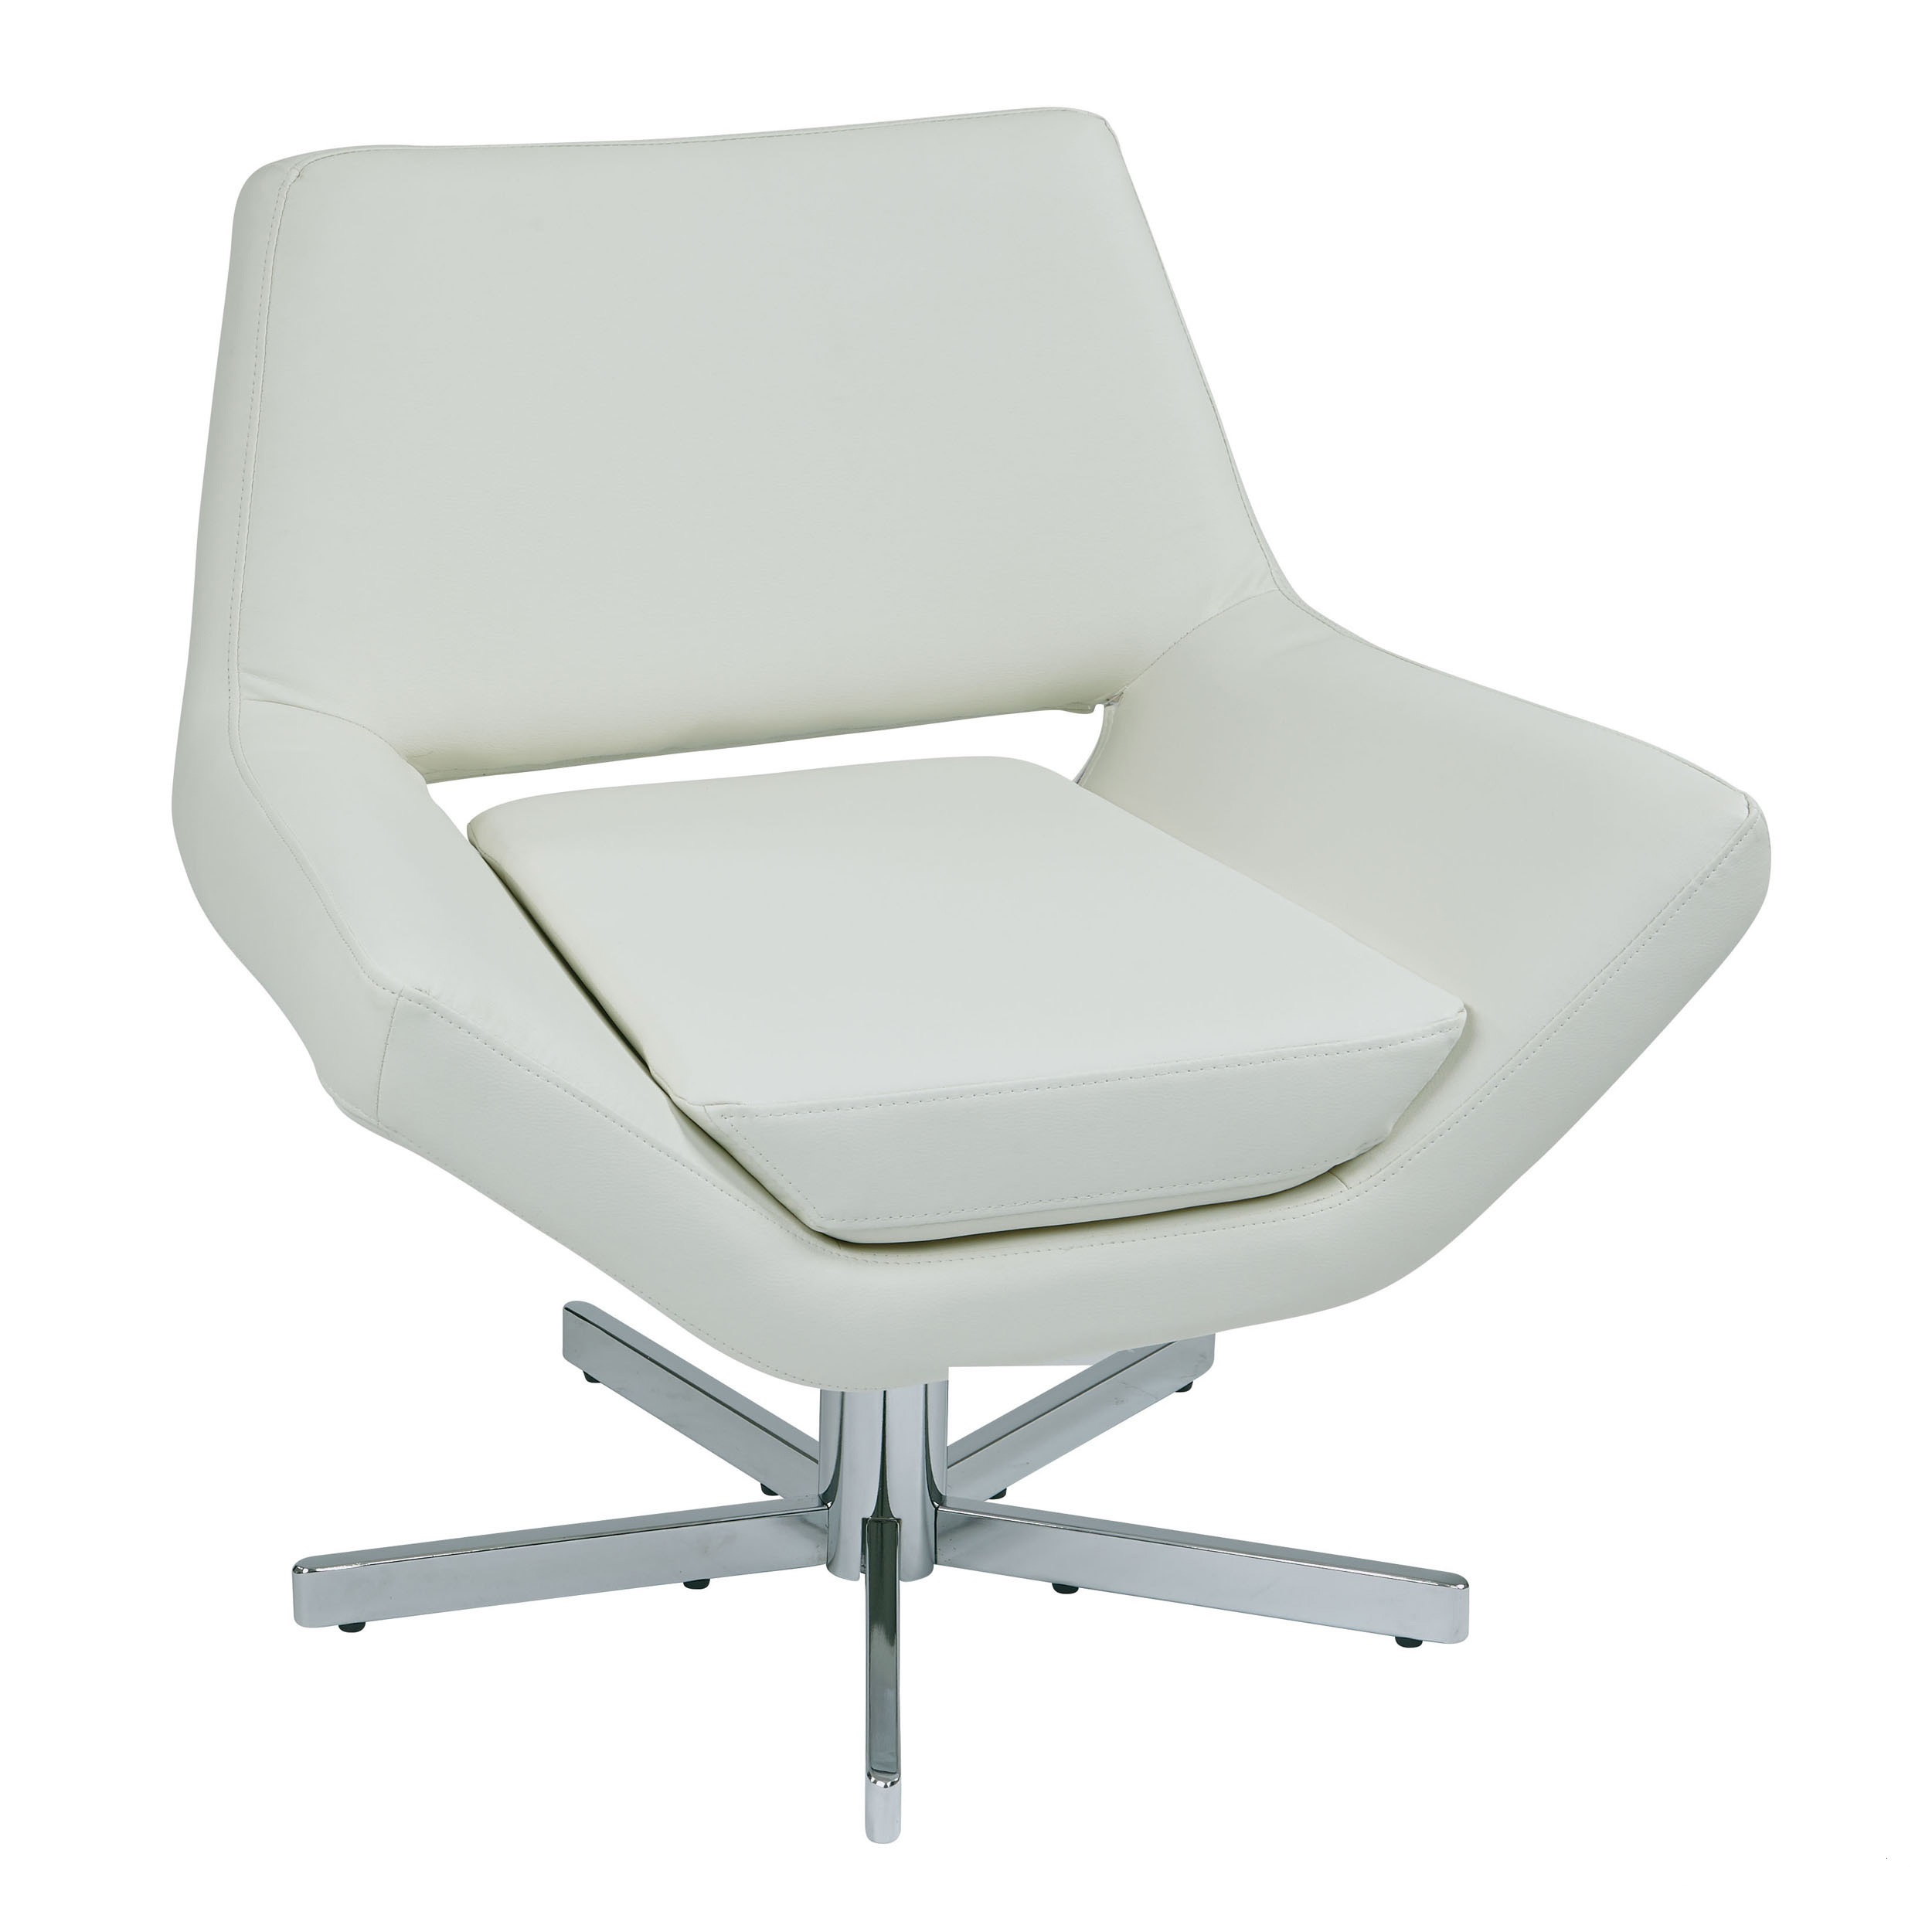 modern leather swivel lounge chair ashley furniture oversized the look for less chairs